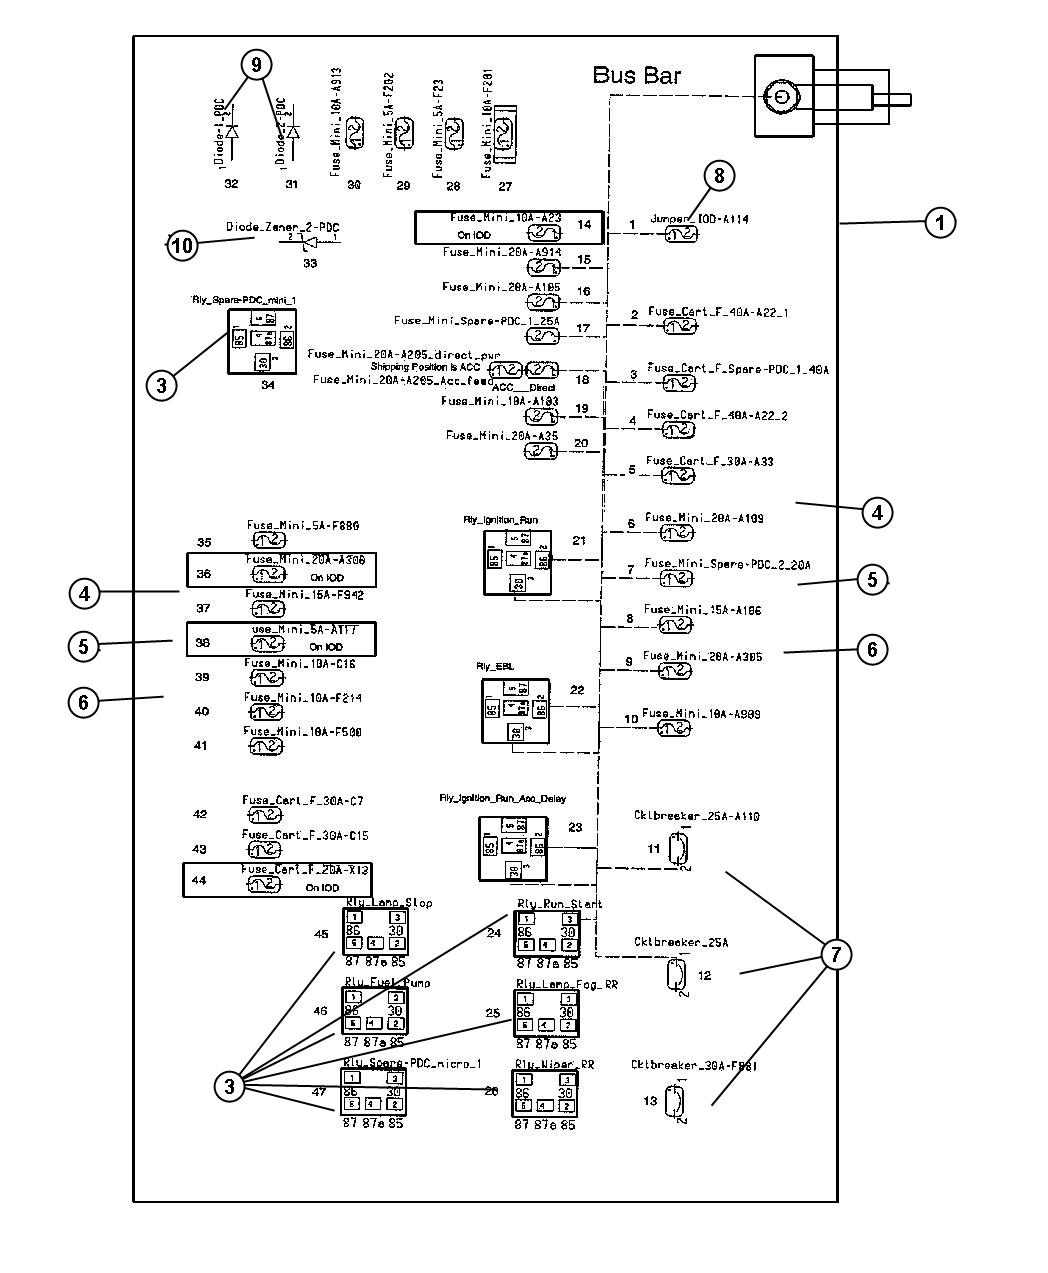 hight resolution of 2005 300c fuse diagram wiring diagrams 2007 chrysler 300 fuse chart chrysler 300 fuse box diagram pdf